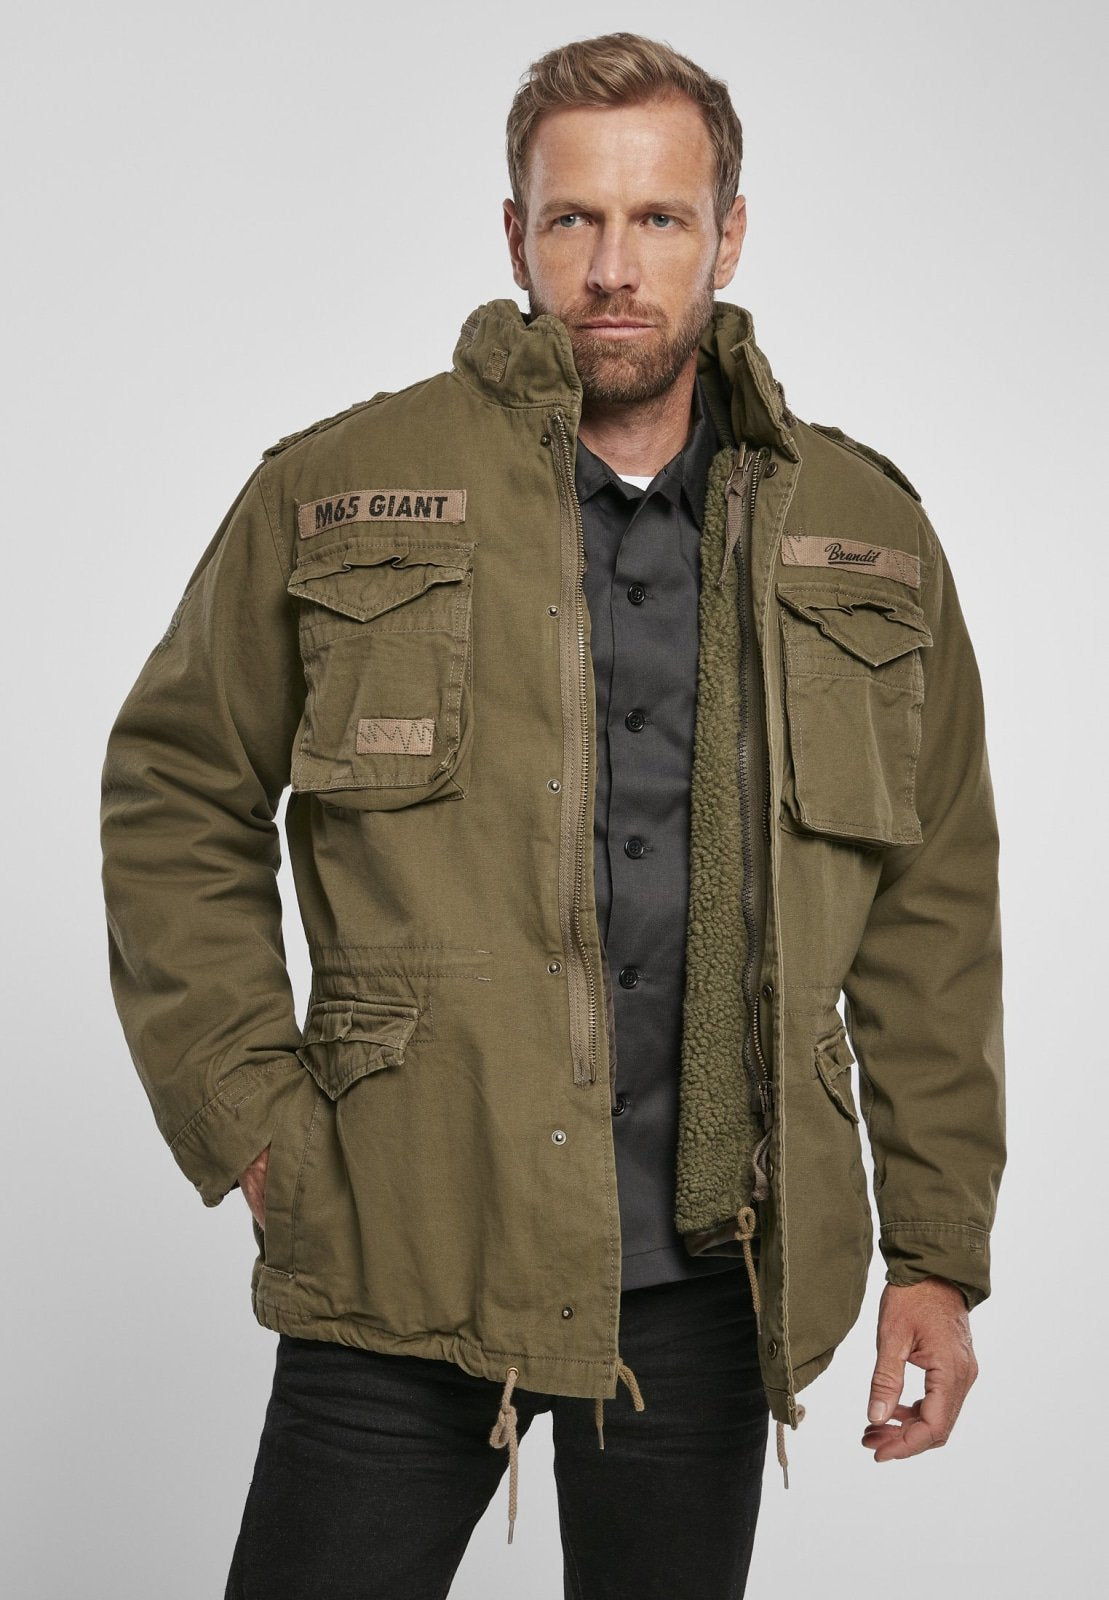 M-65 Giant (9 Colors) Olive / s Jacket Brandit